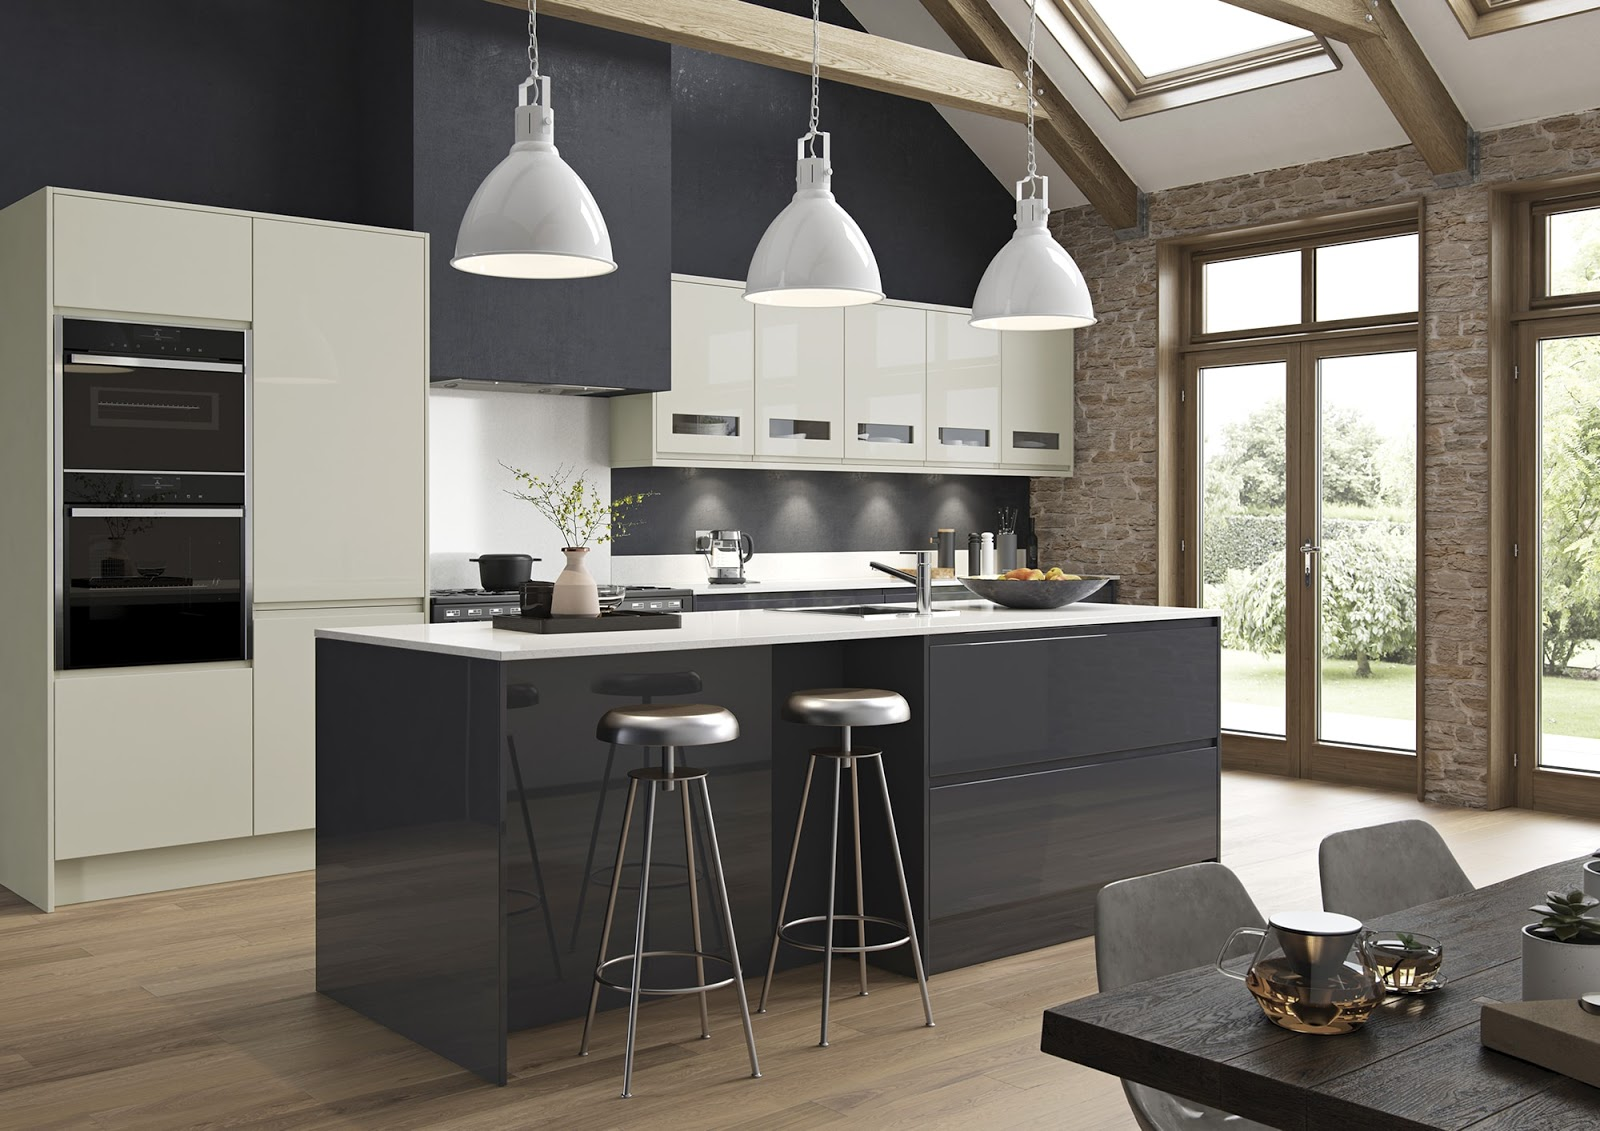 https://www.kitchenstori.com/kitchen-collection/strada-gloss-porcelain-graphite